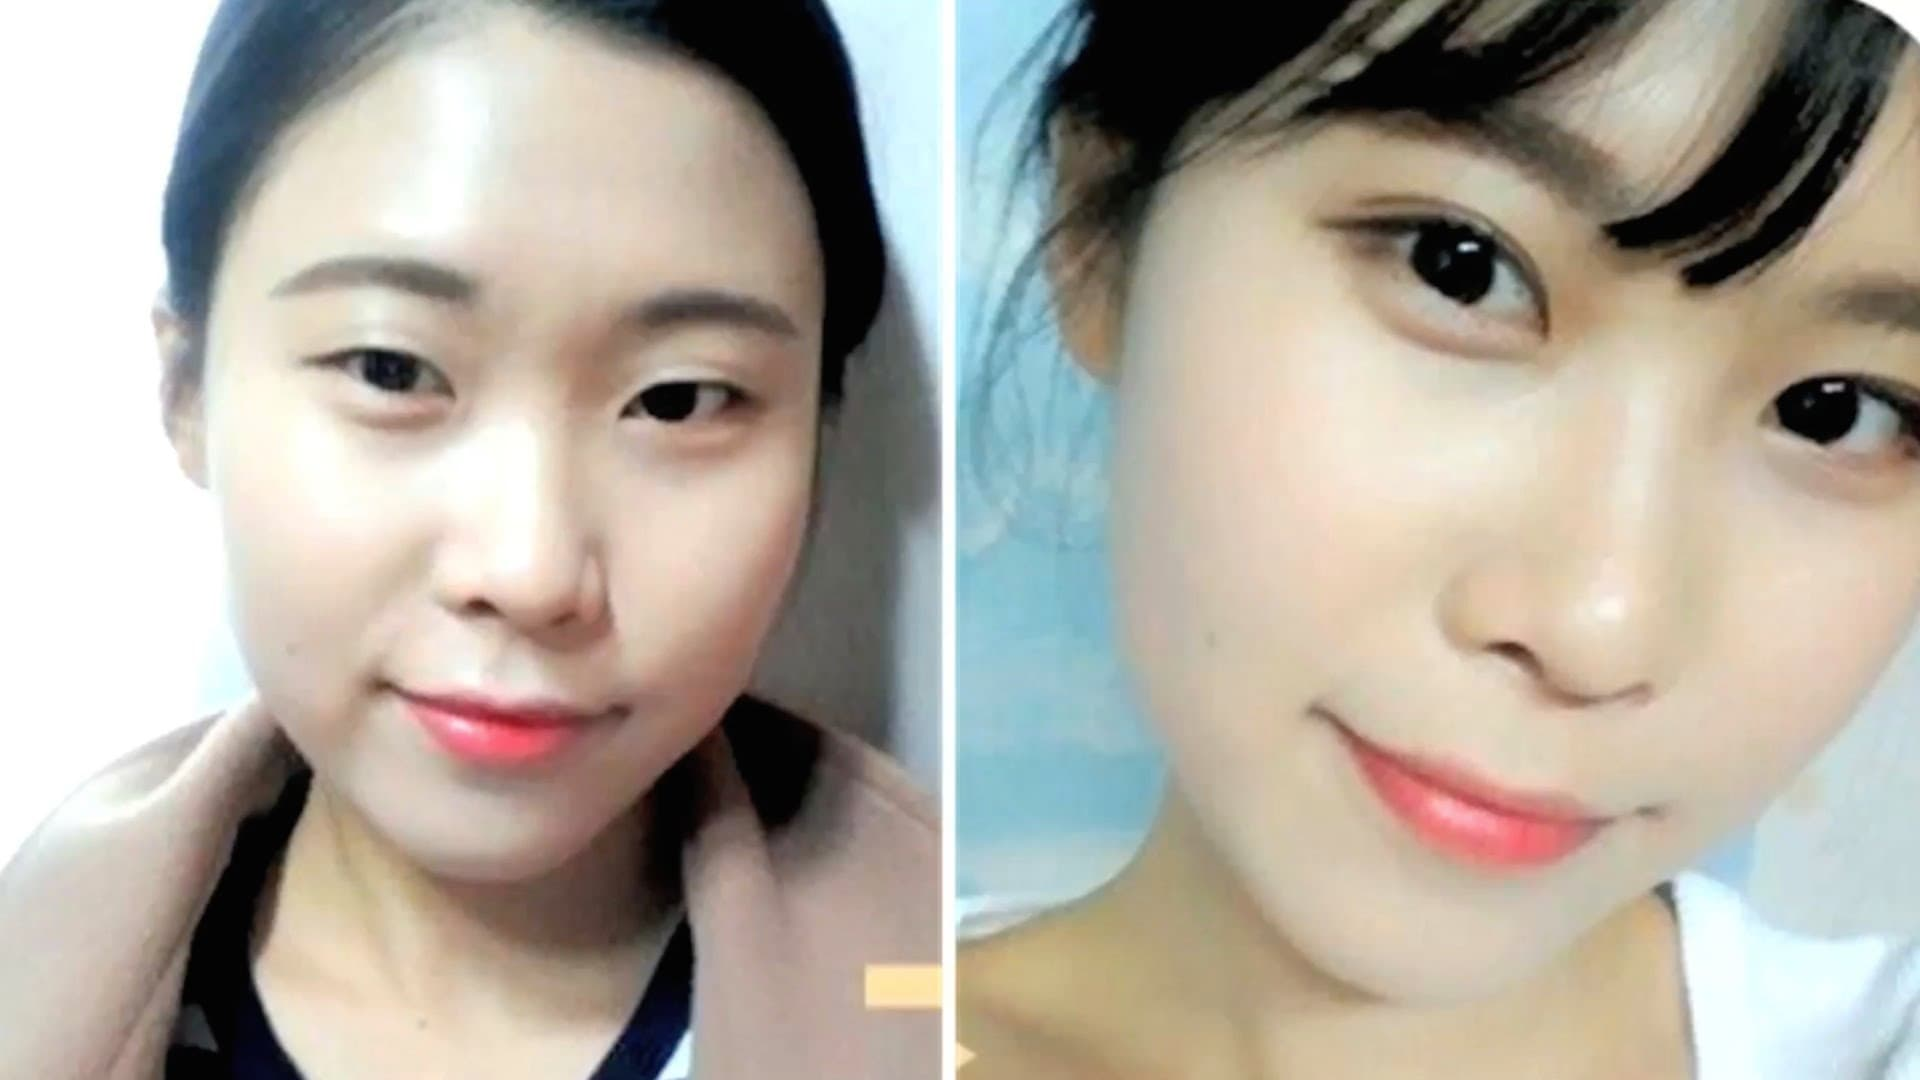 Korea Before After Plastic Surgery photo - 1